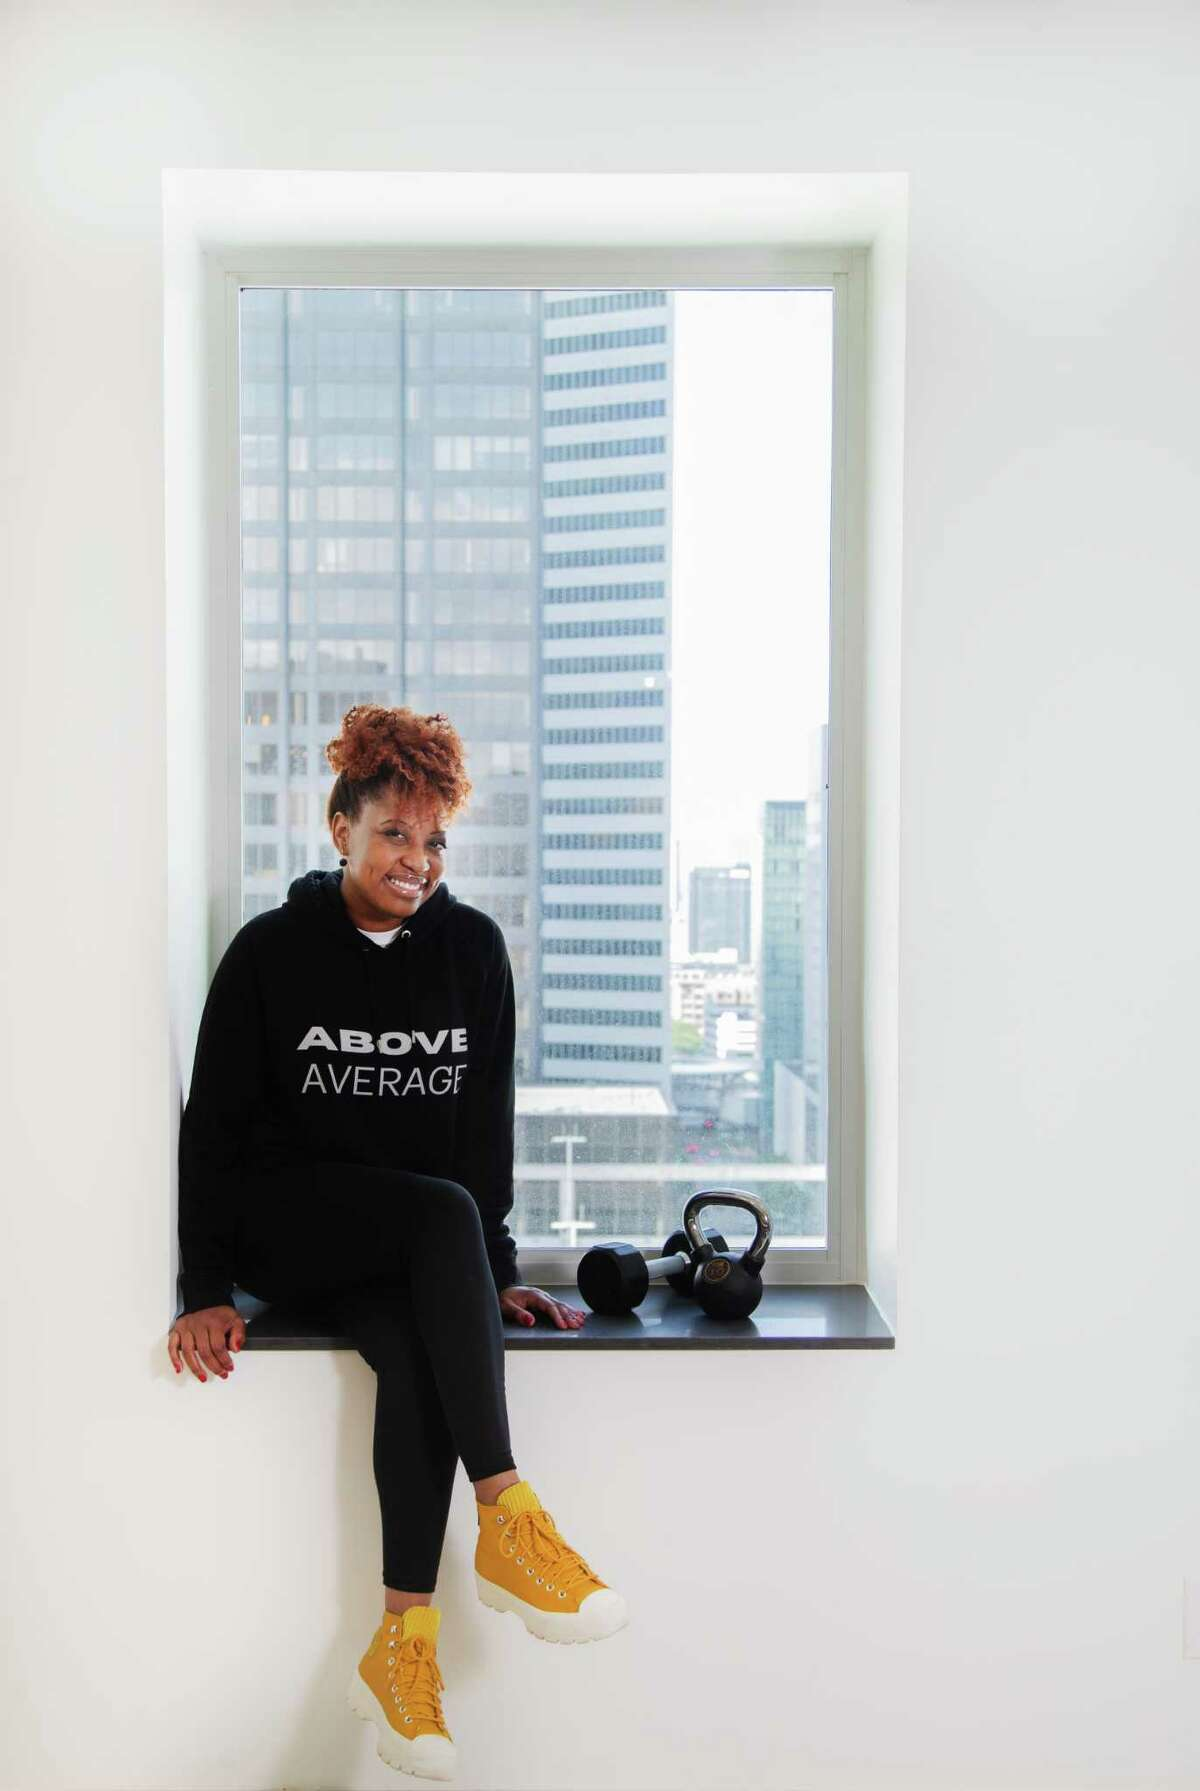 """Dawn Callahan models one of the athletic sportswear hoodies she created with the message """"Above Average,"""" Monday, May 10, 2021, in Houston. Callahan created the clothing during the pandemic as her side project."""